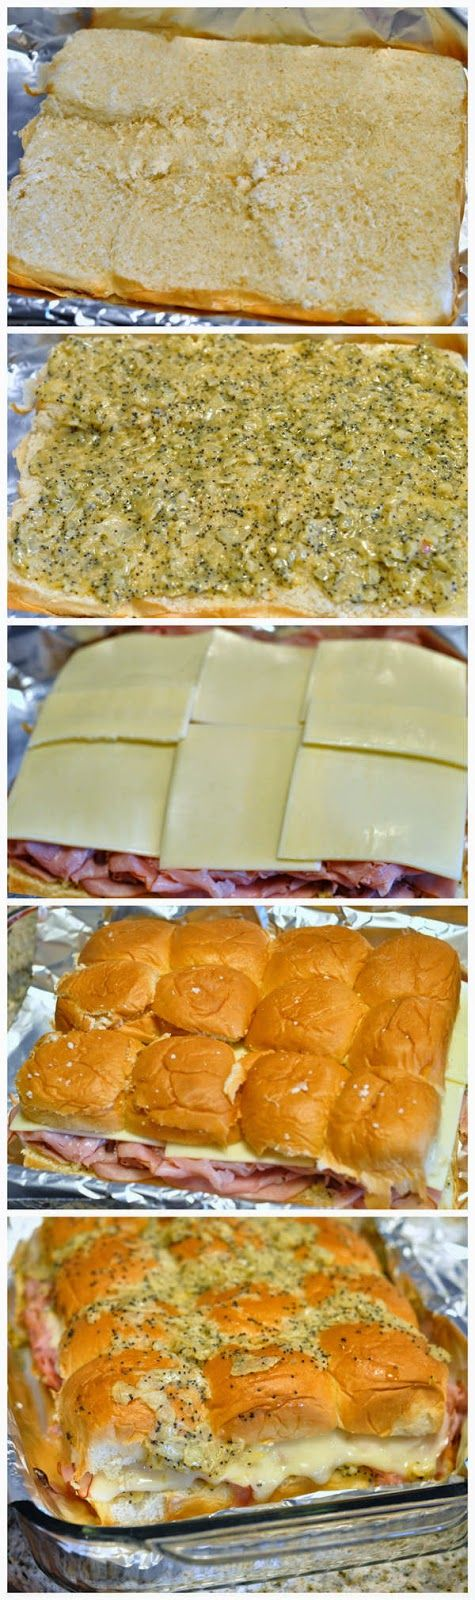 Ham & Cheese Poppyseed Sliders- These couldn't be any easier to make and are great for gameday or parties or even for lunch paired with a cu...